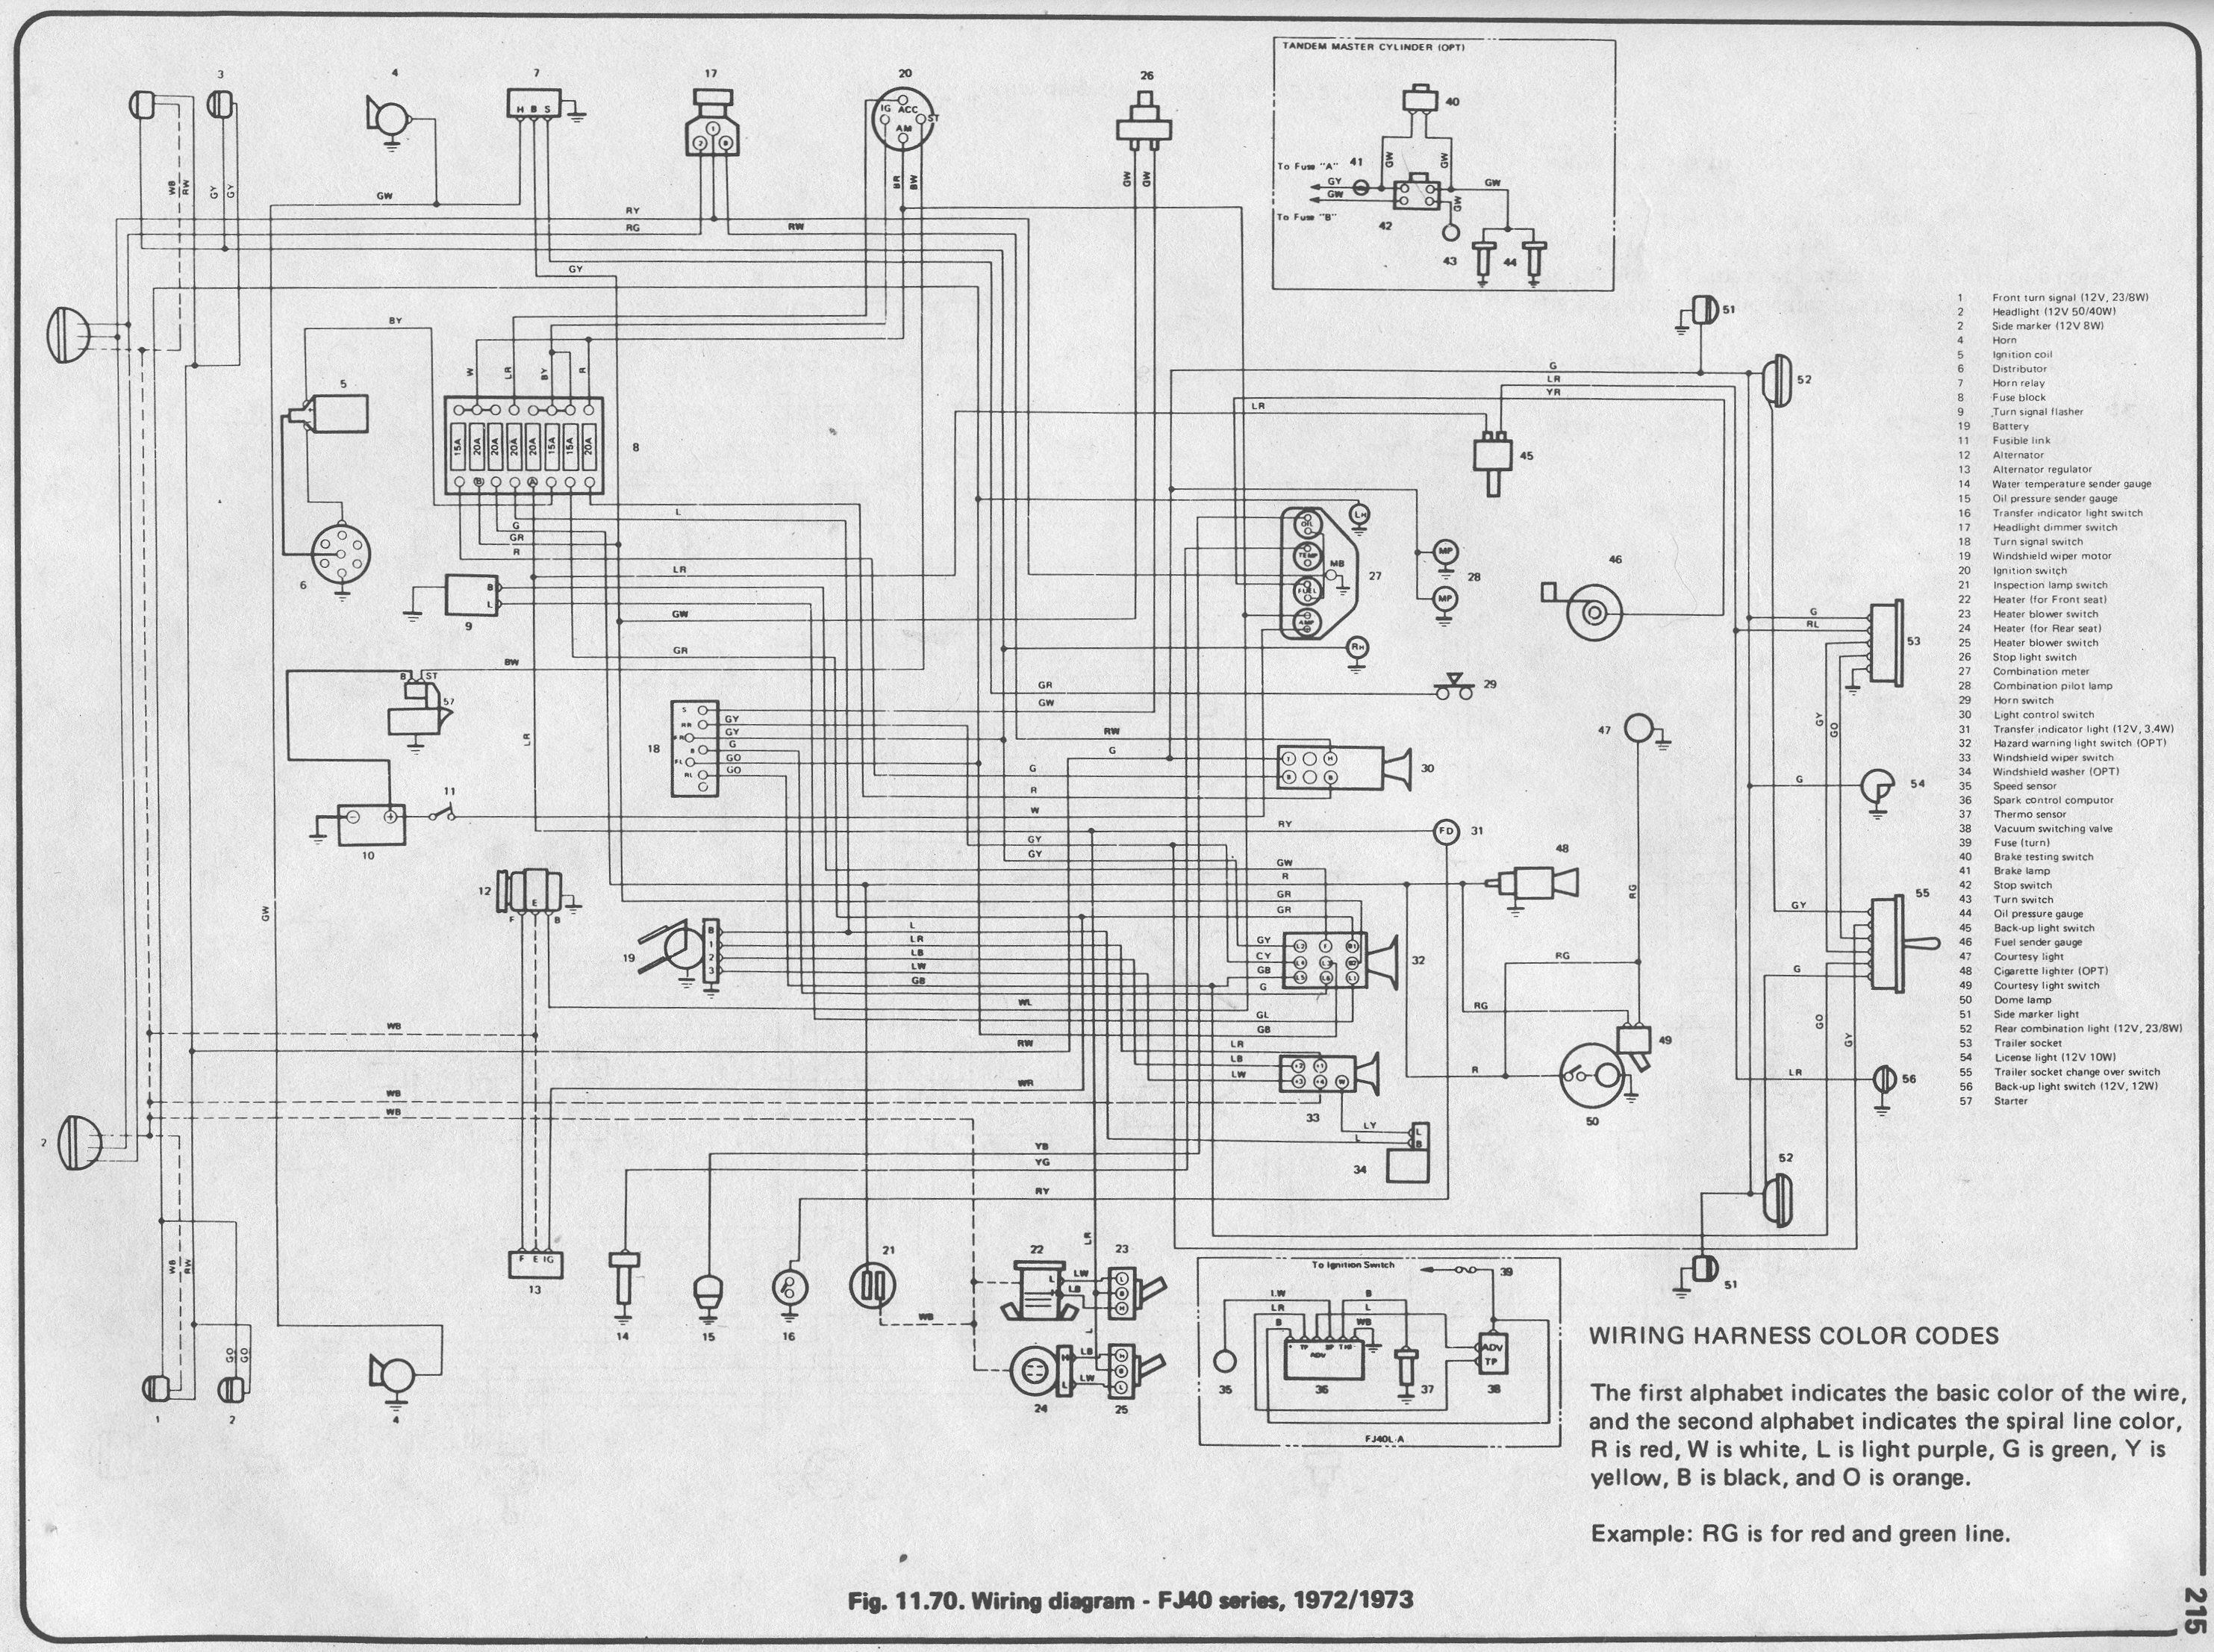 1975 Toyota Fj40 Wiring Diagram : 31 Wiring Diagram Images